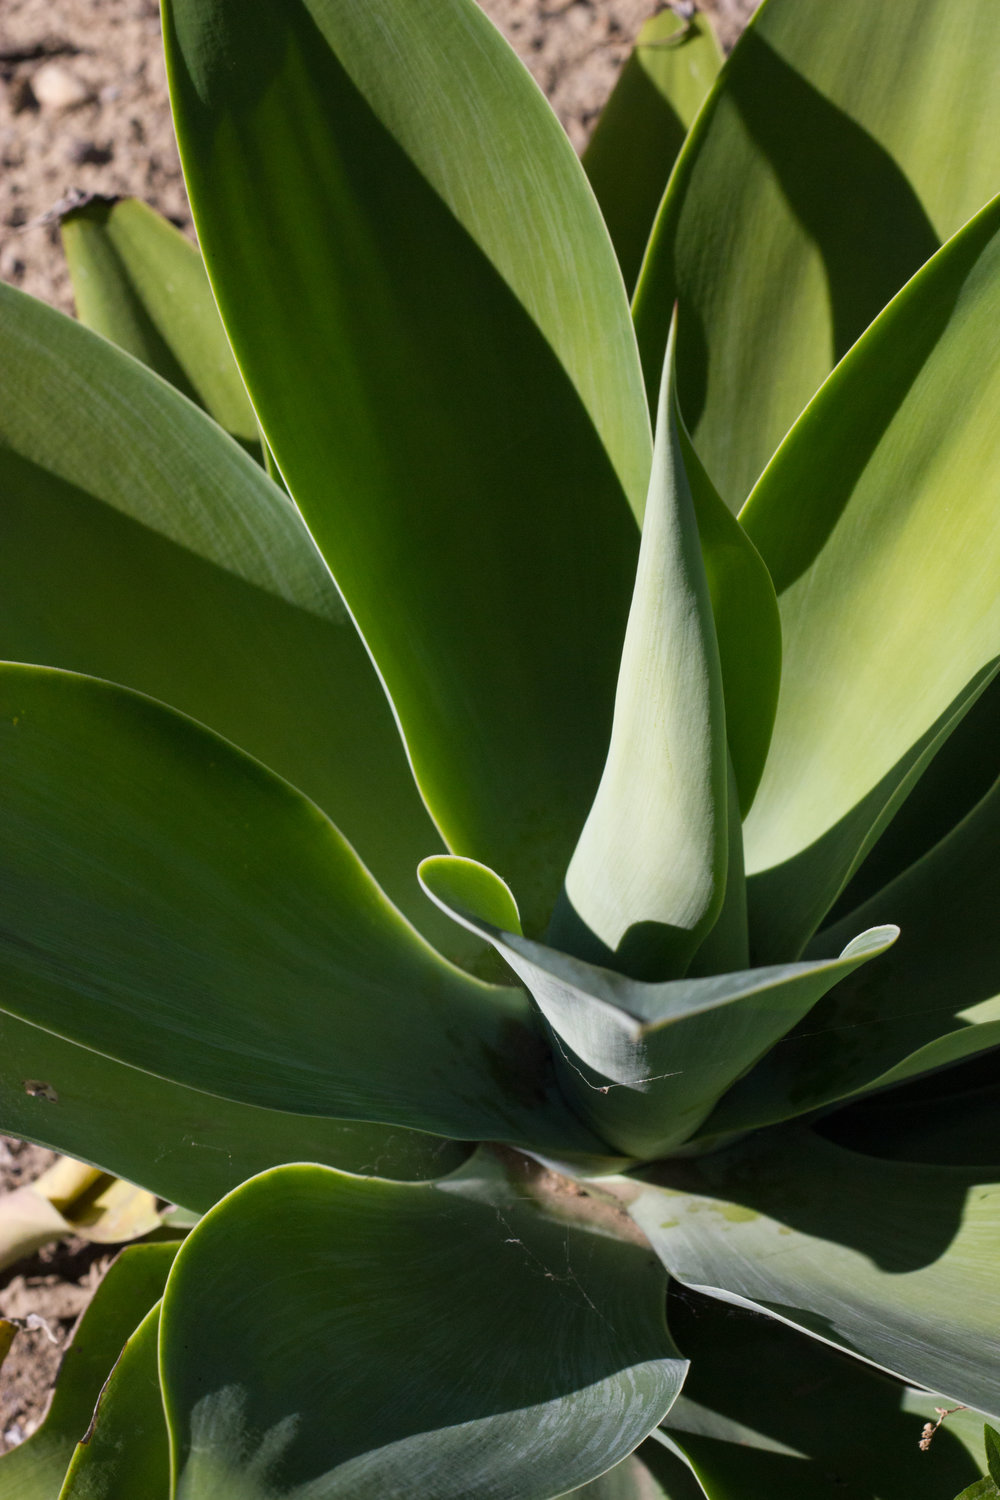 agave shapes by leah pellegrini for thread caravan.jpg